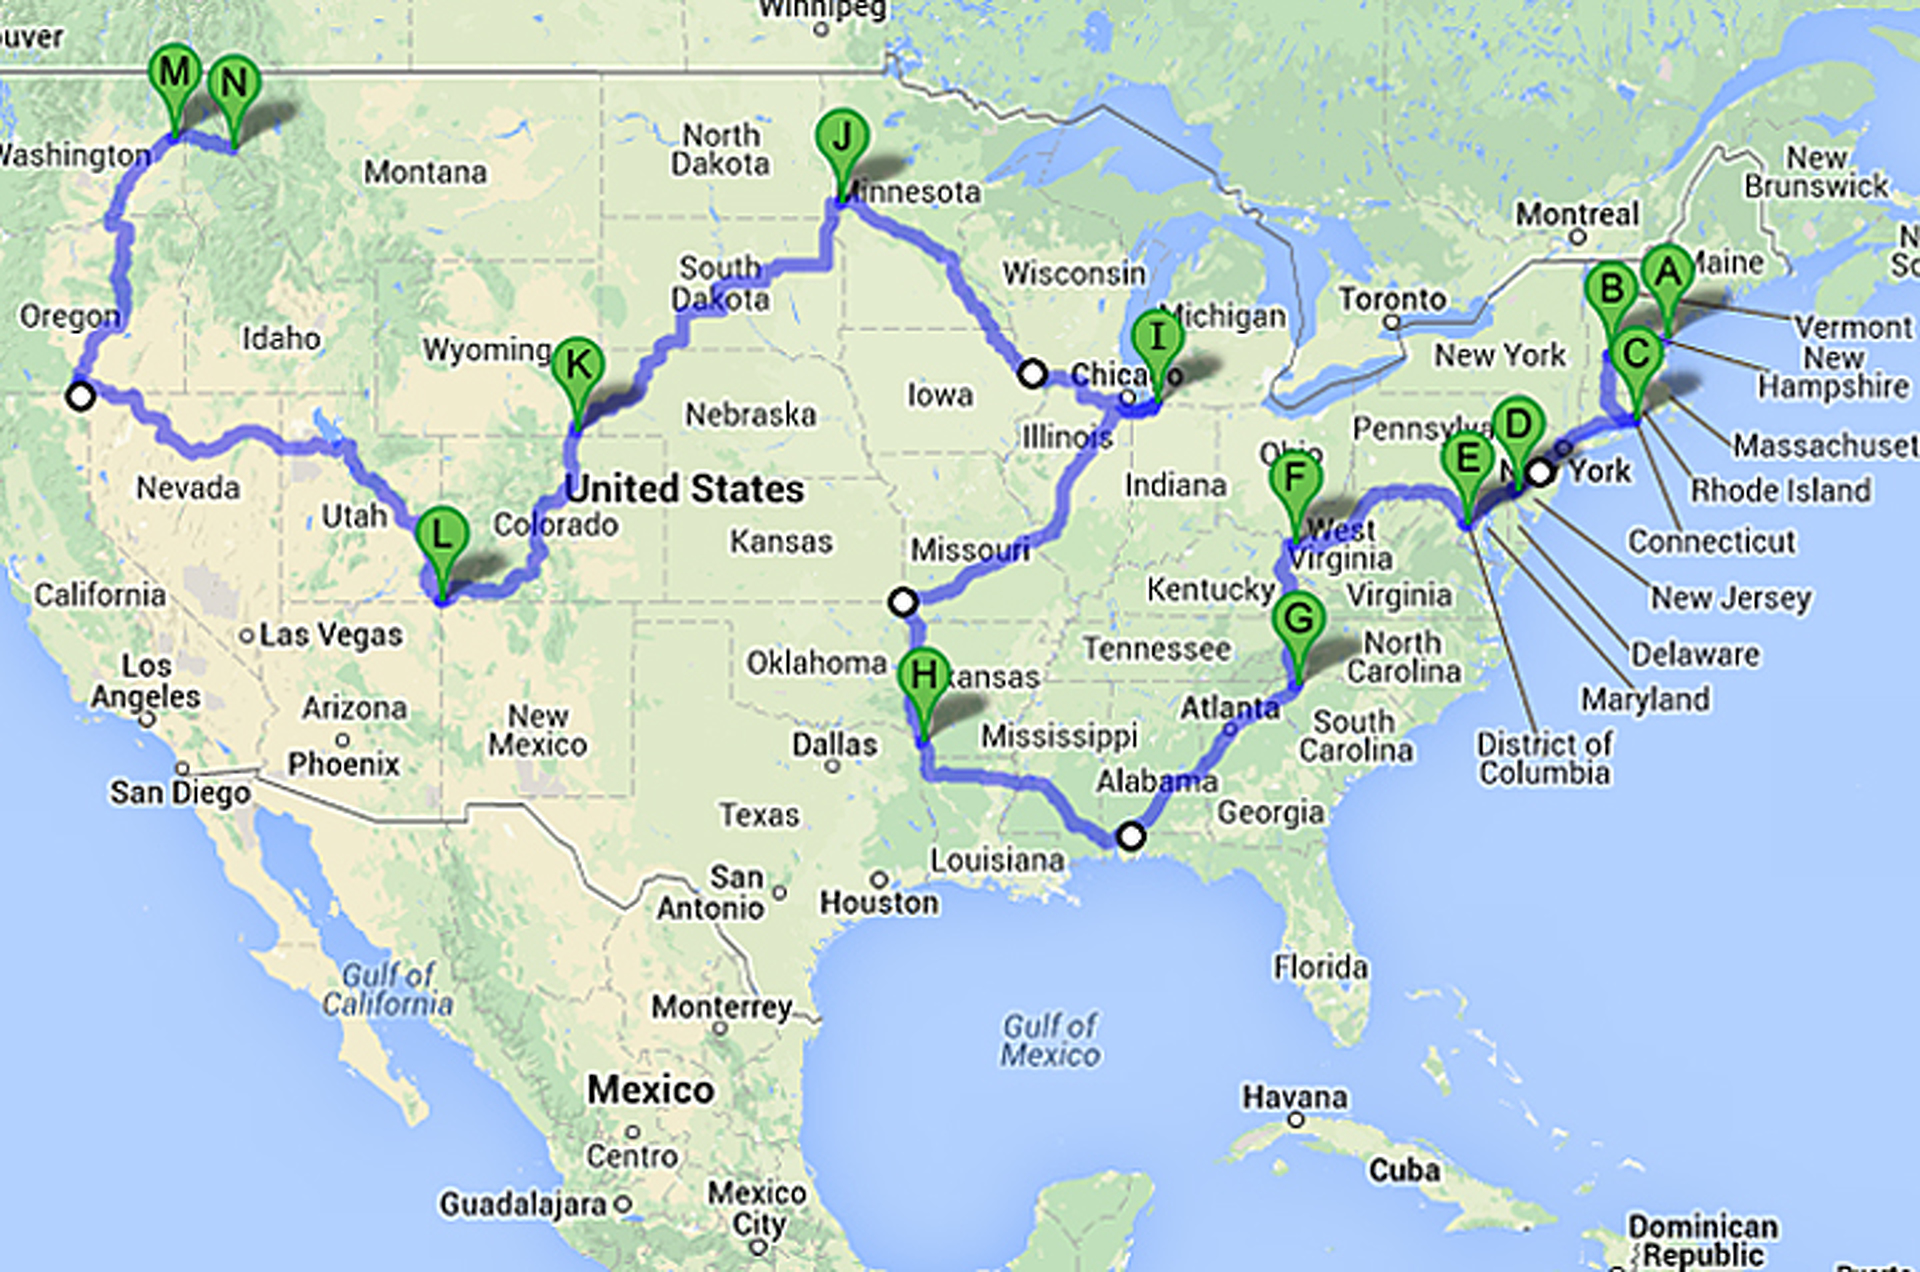 How to Take a 48 State Road Trip in Less than 6 Days  States Road Trip Map on louisville zip code map, american road map, all 48 states road map, 48 state motorcycle ride map, us travel map, 48 states on a motorcycle, us landmarks to visit driving map, 48 states in 48 days, large united states time zone map, 48 states in 10 days route, hands across america map, usa map, ky mammoth cave national park map, 48 states list,